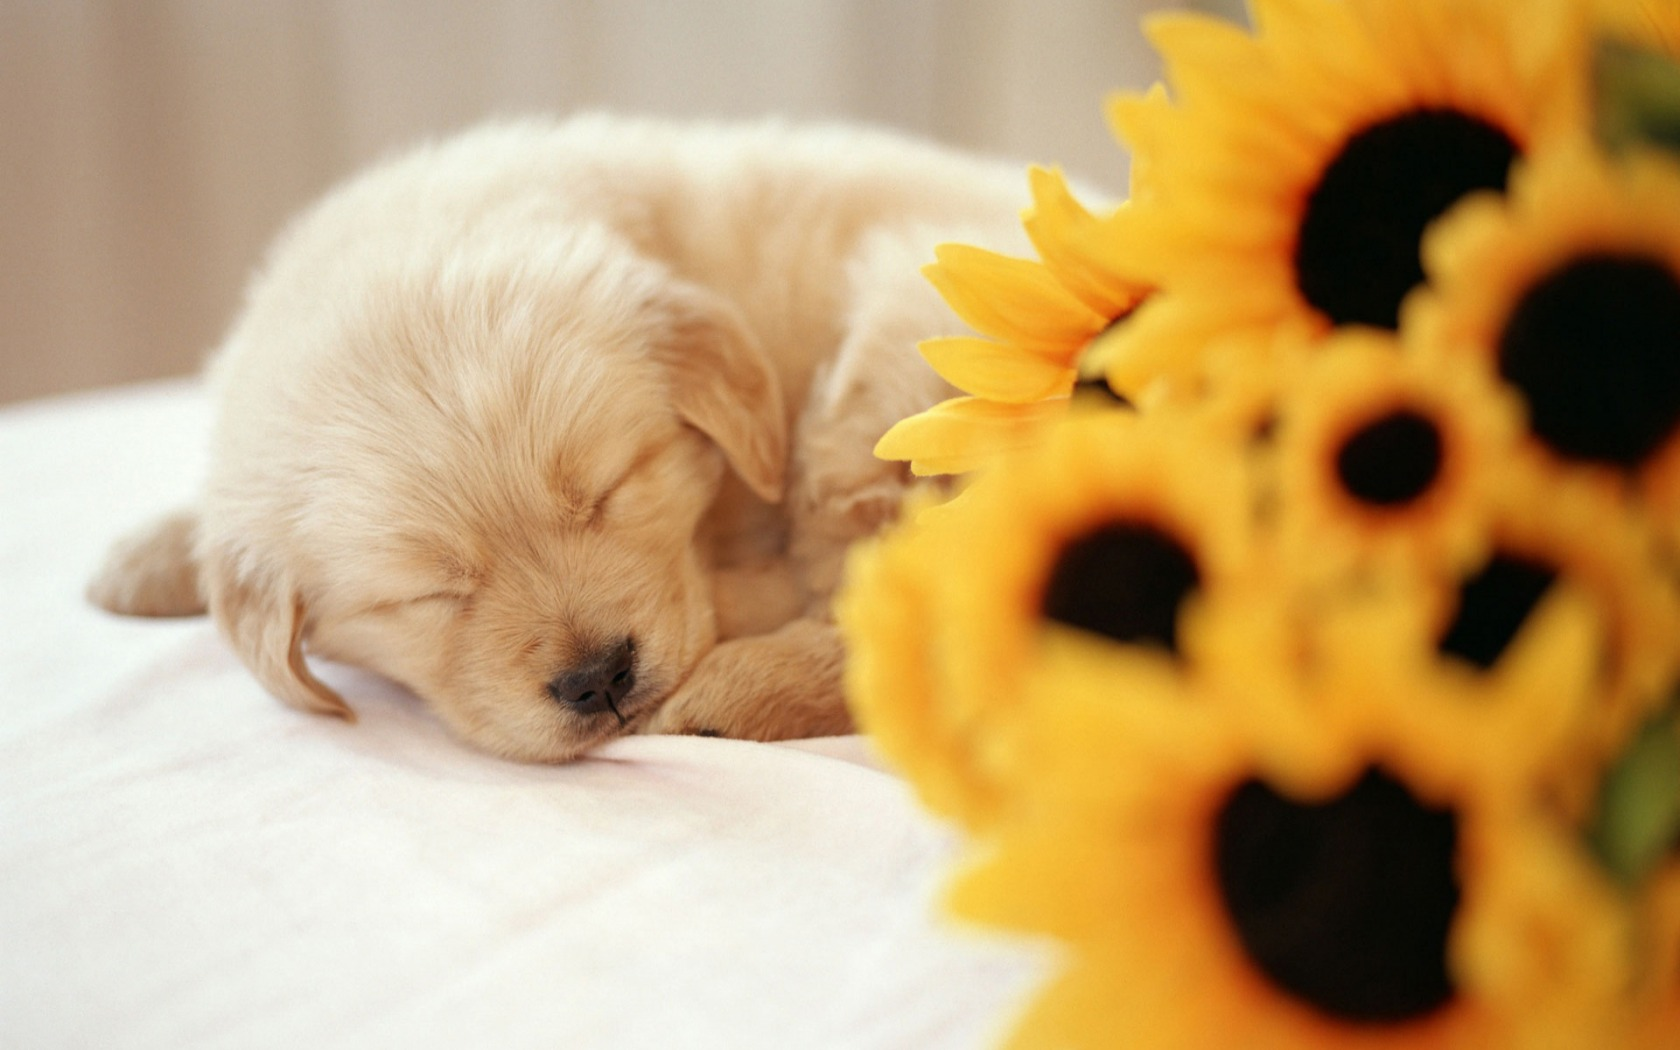 Sleeping Puppy Wallpaper Dogs Animals Wallpapers In Jpg Format For